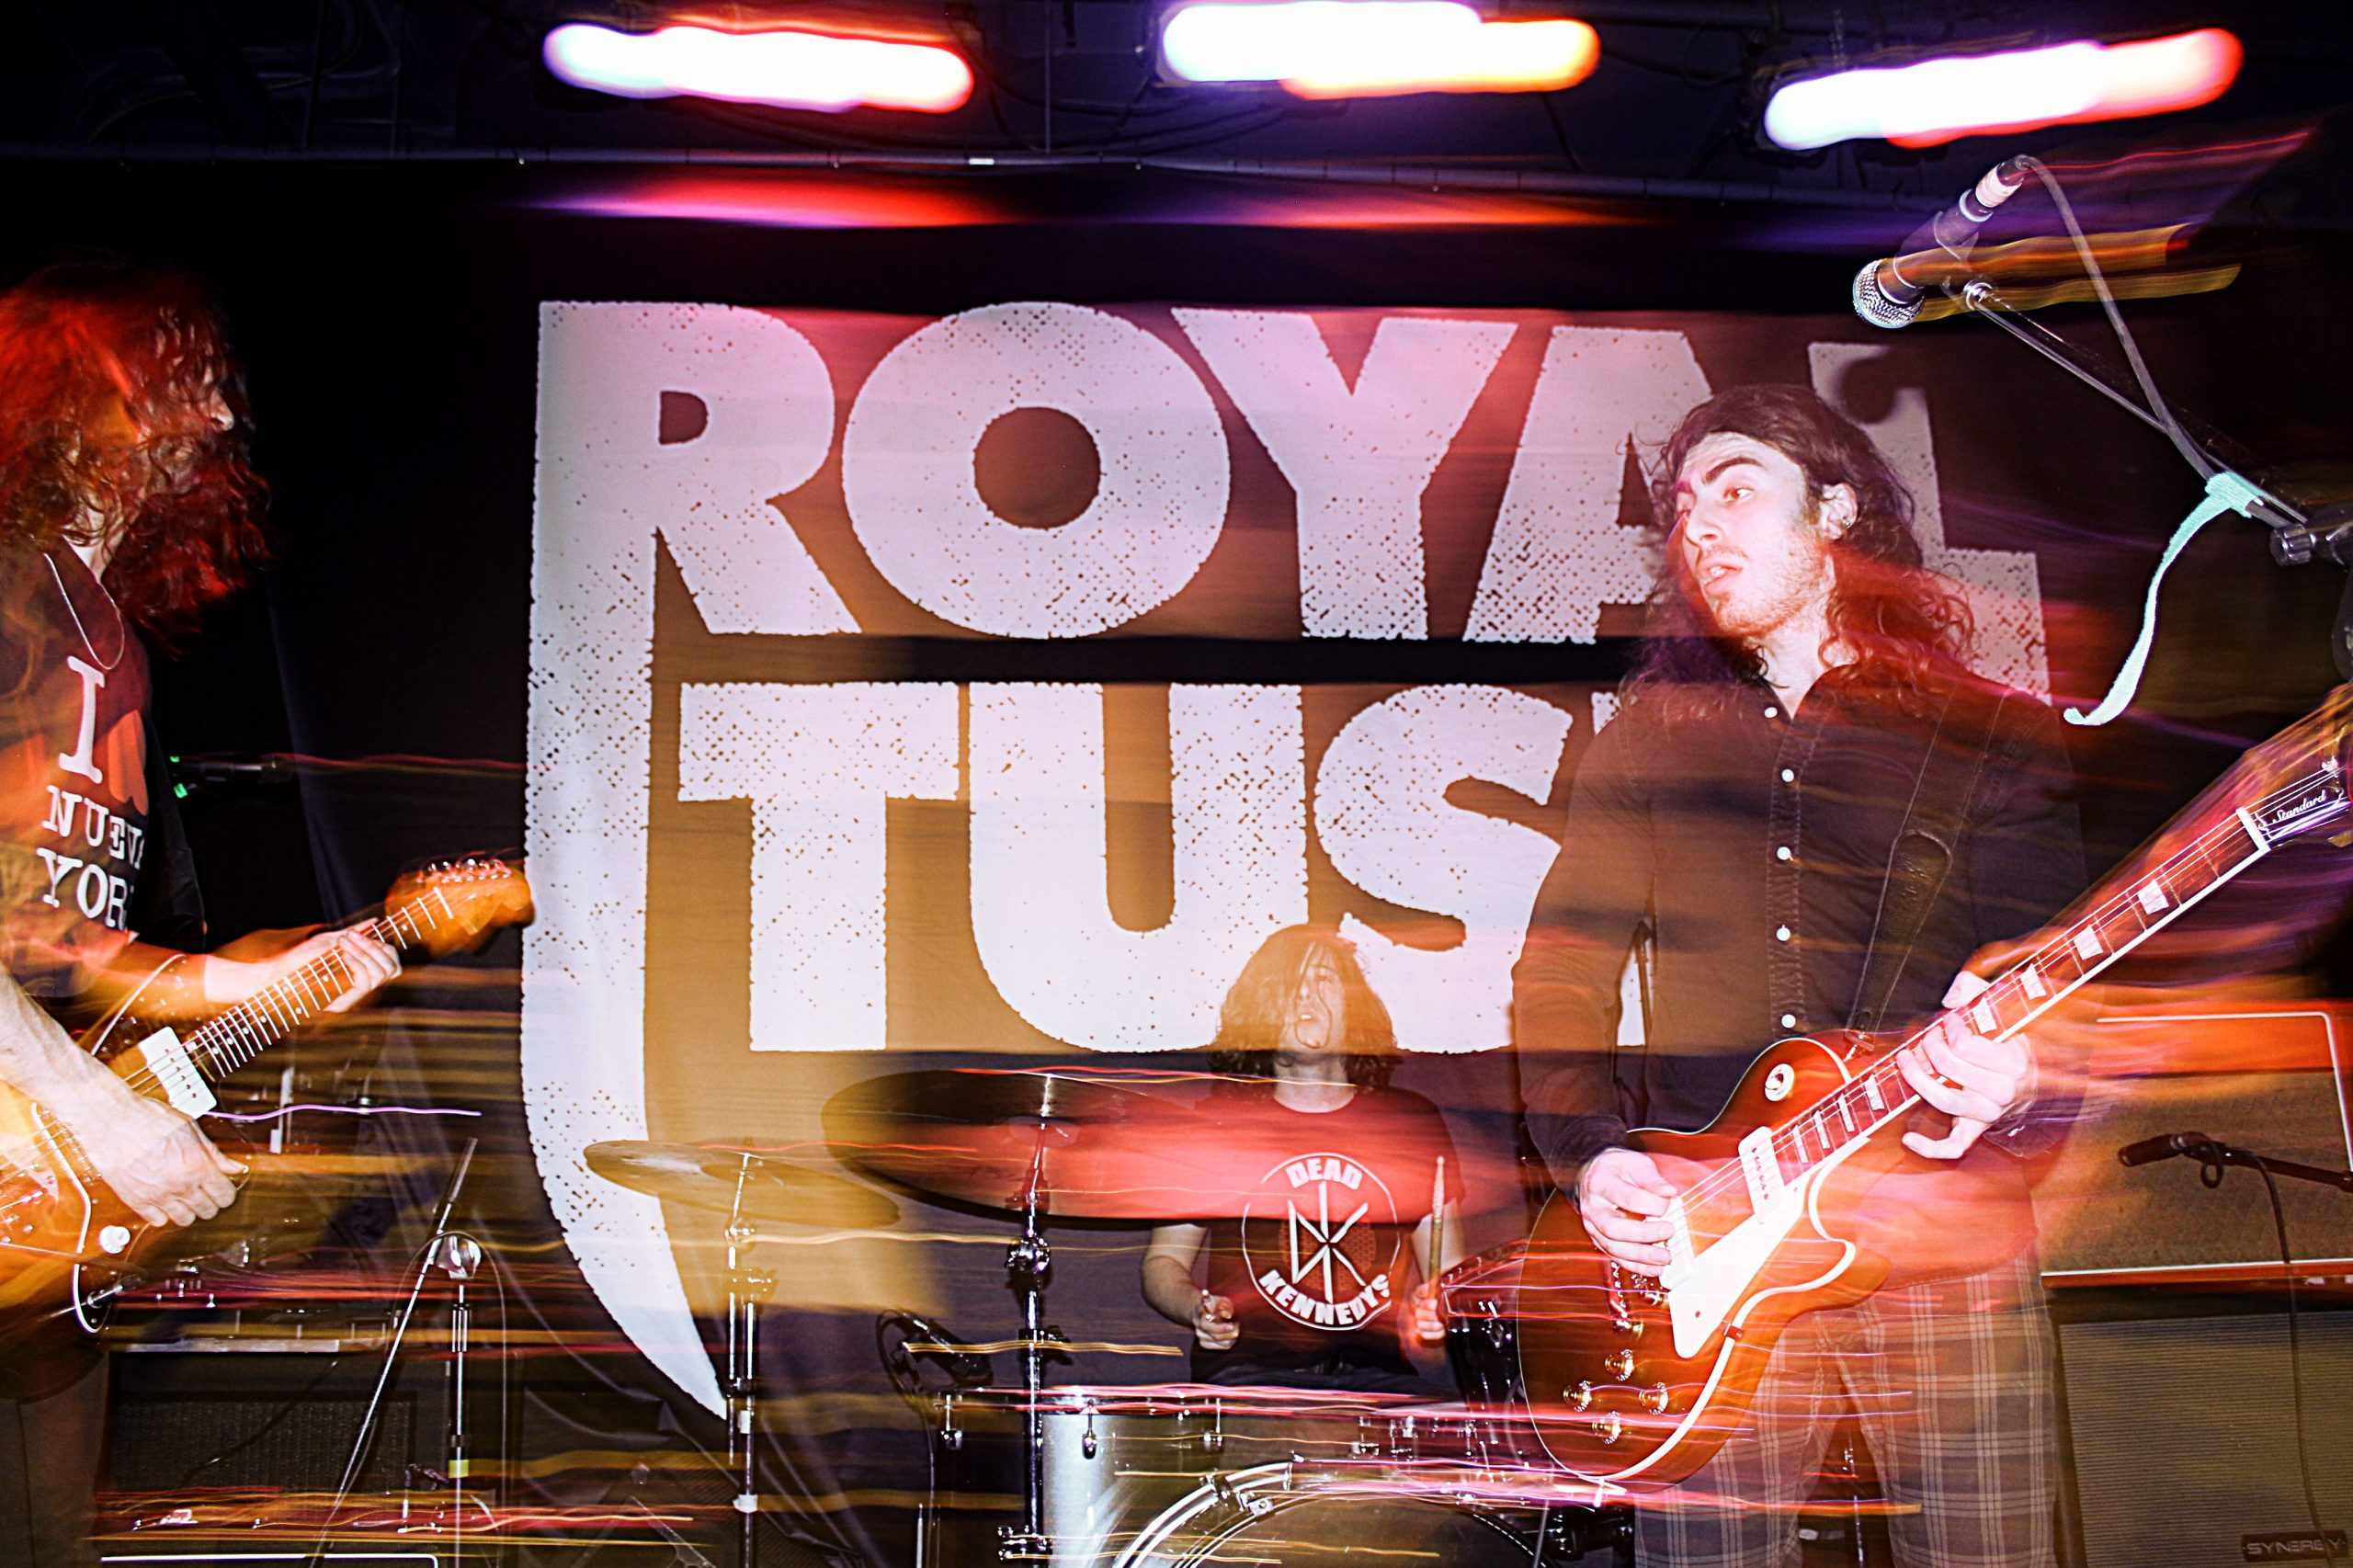 Royal Tusk, BRKN LOVE, and More at Gordon Best Theatre